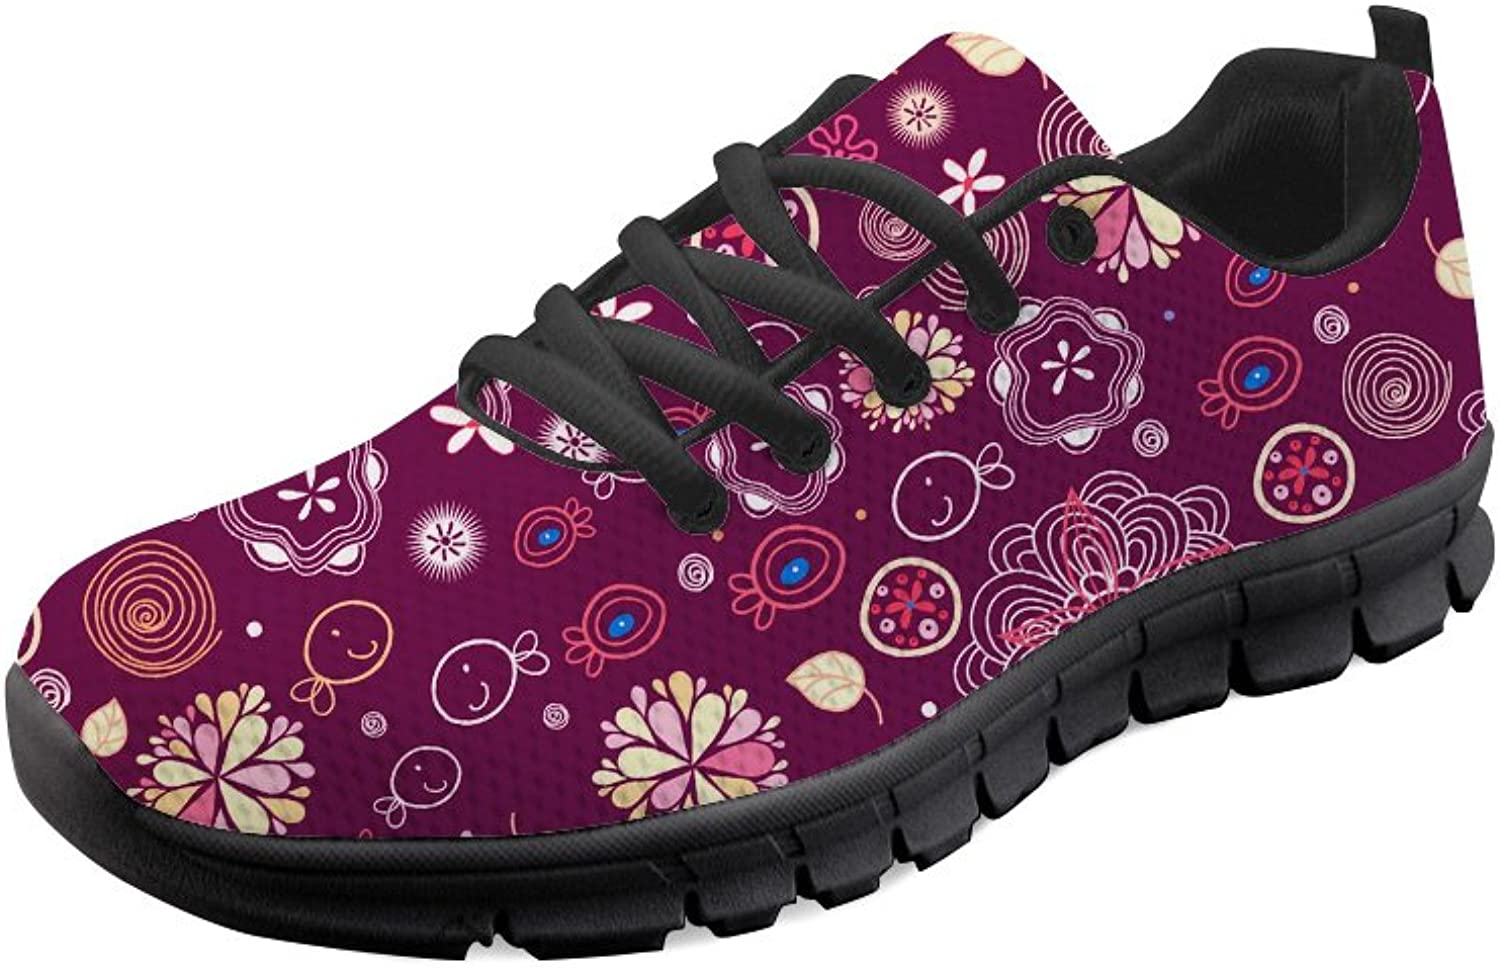 Doginthehole Floral Print Women's Casual Running shoes Flat Soft Mesh Sneakers